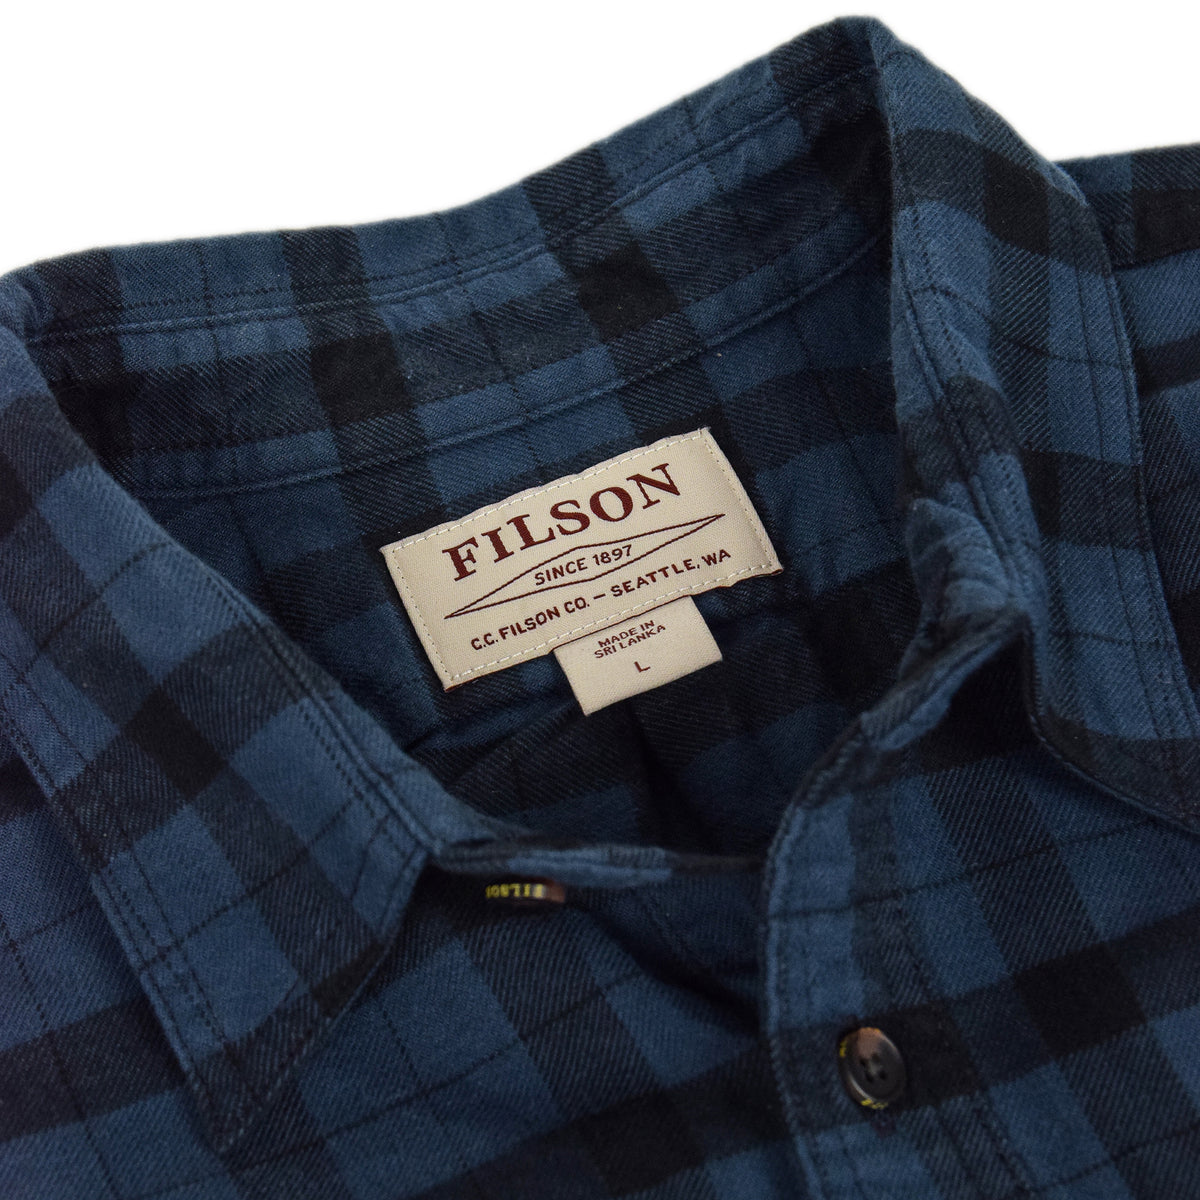 Filson Alaskan Guide Cotton Flannel Shirt Blue/Black Collar